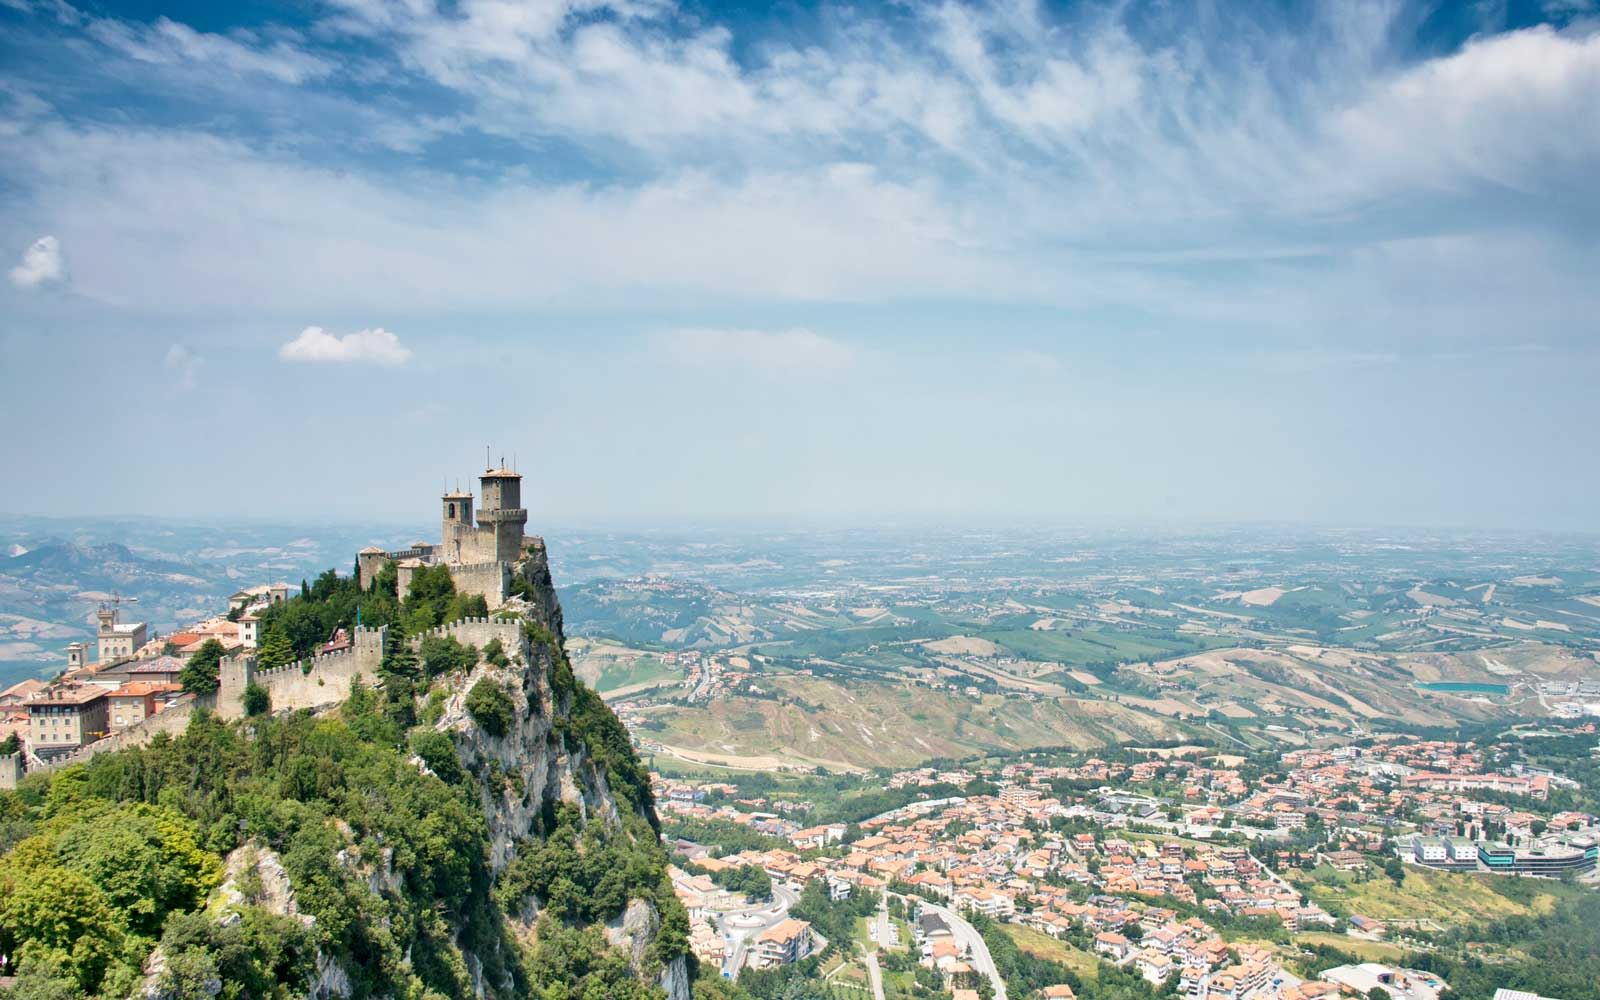 Guaita fortress in San Marino with valley in background.